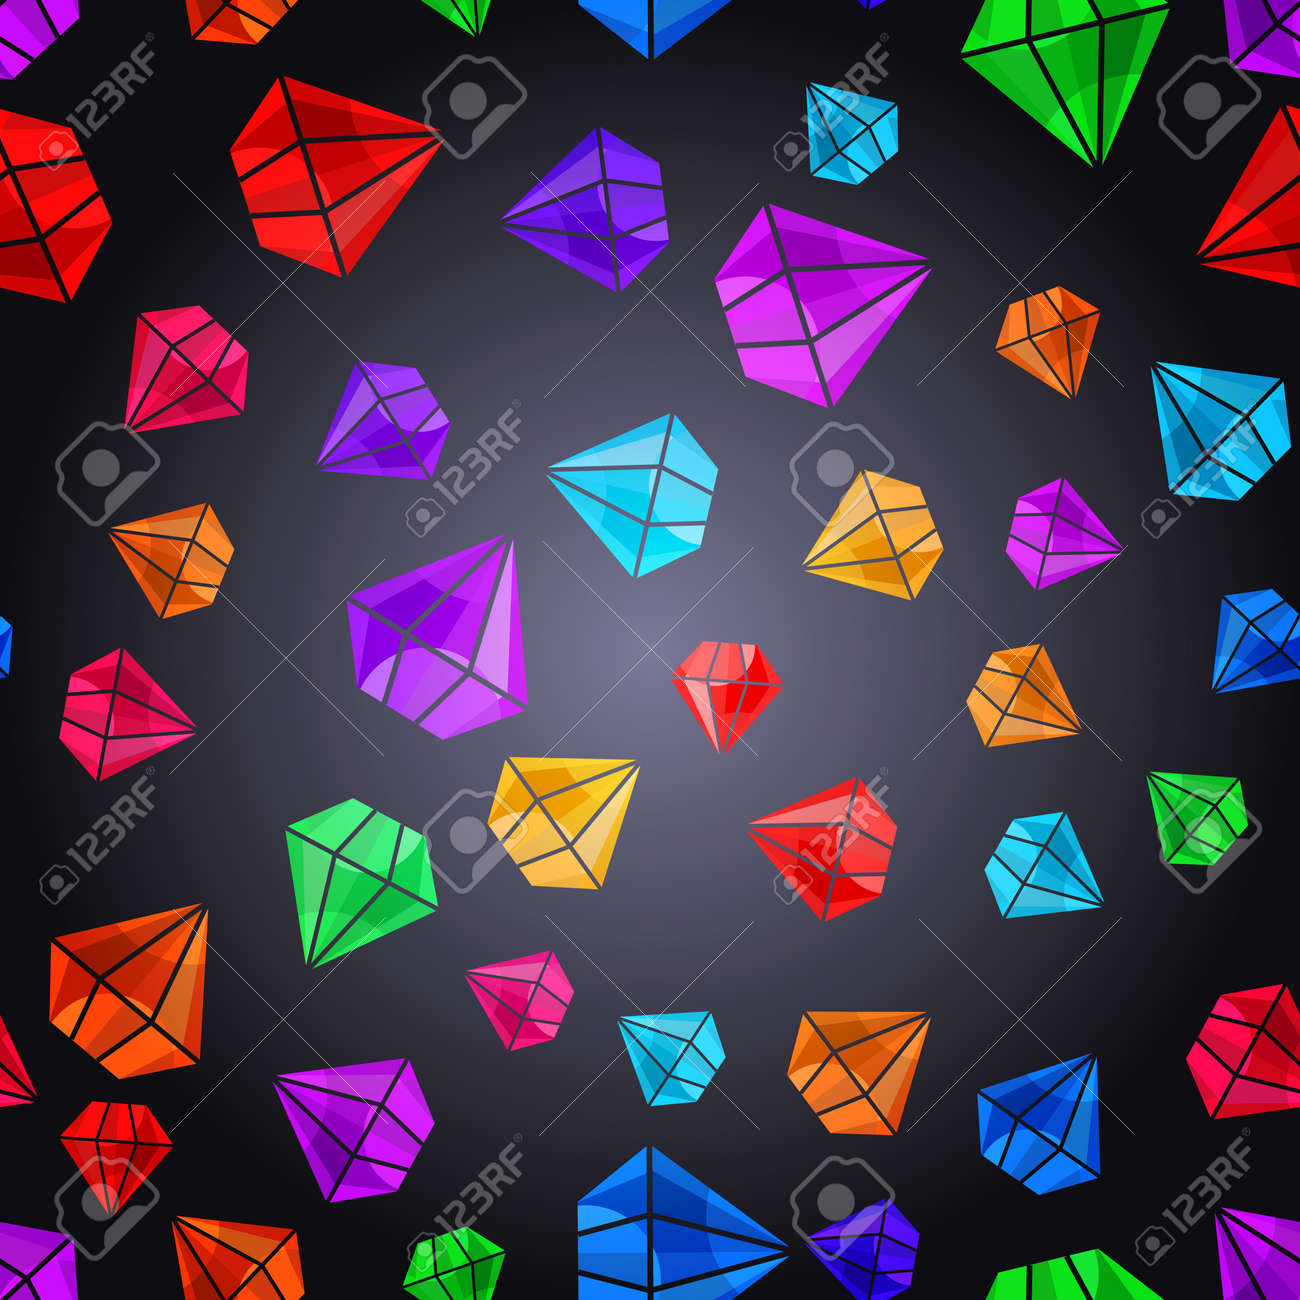 Vector abstract background with diamond crystals. Design element. Colorful jewel shapes. Vector illustration. Tiling texture for printing on textile, paper, can be used for web design as wallpaper. - 48781485